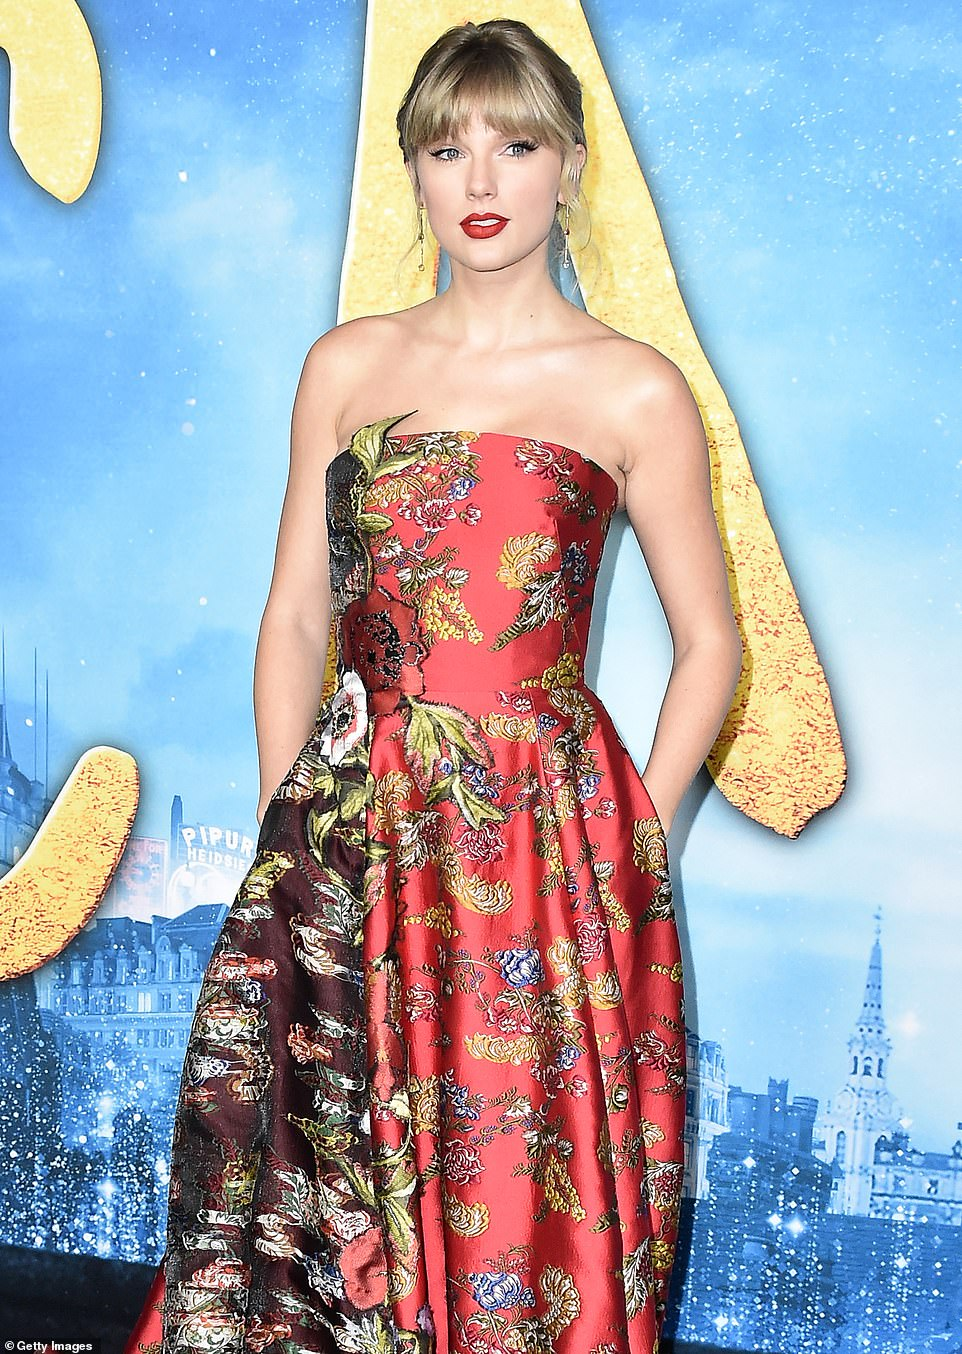 TAYLOR Swift dazzled during the premiere of Cats at the Lincoln Center in New York City on Monday